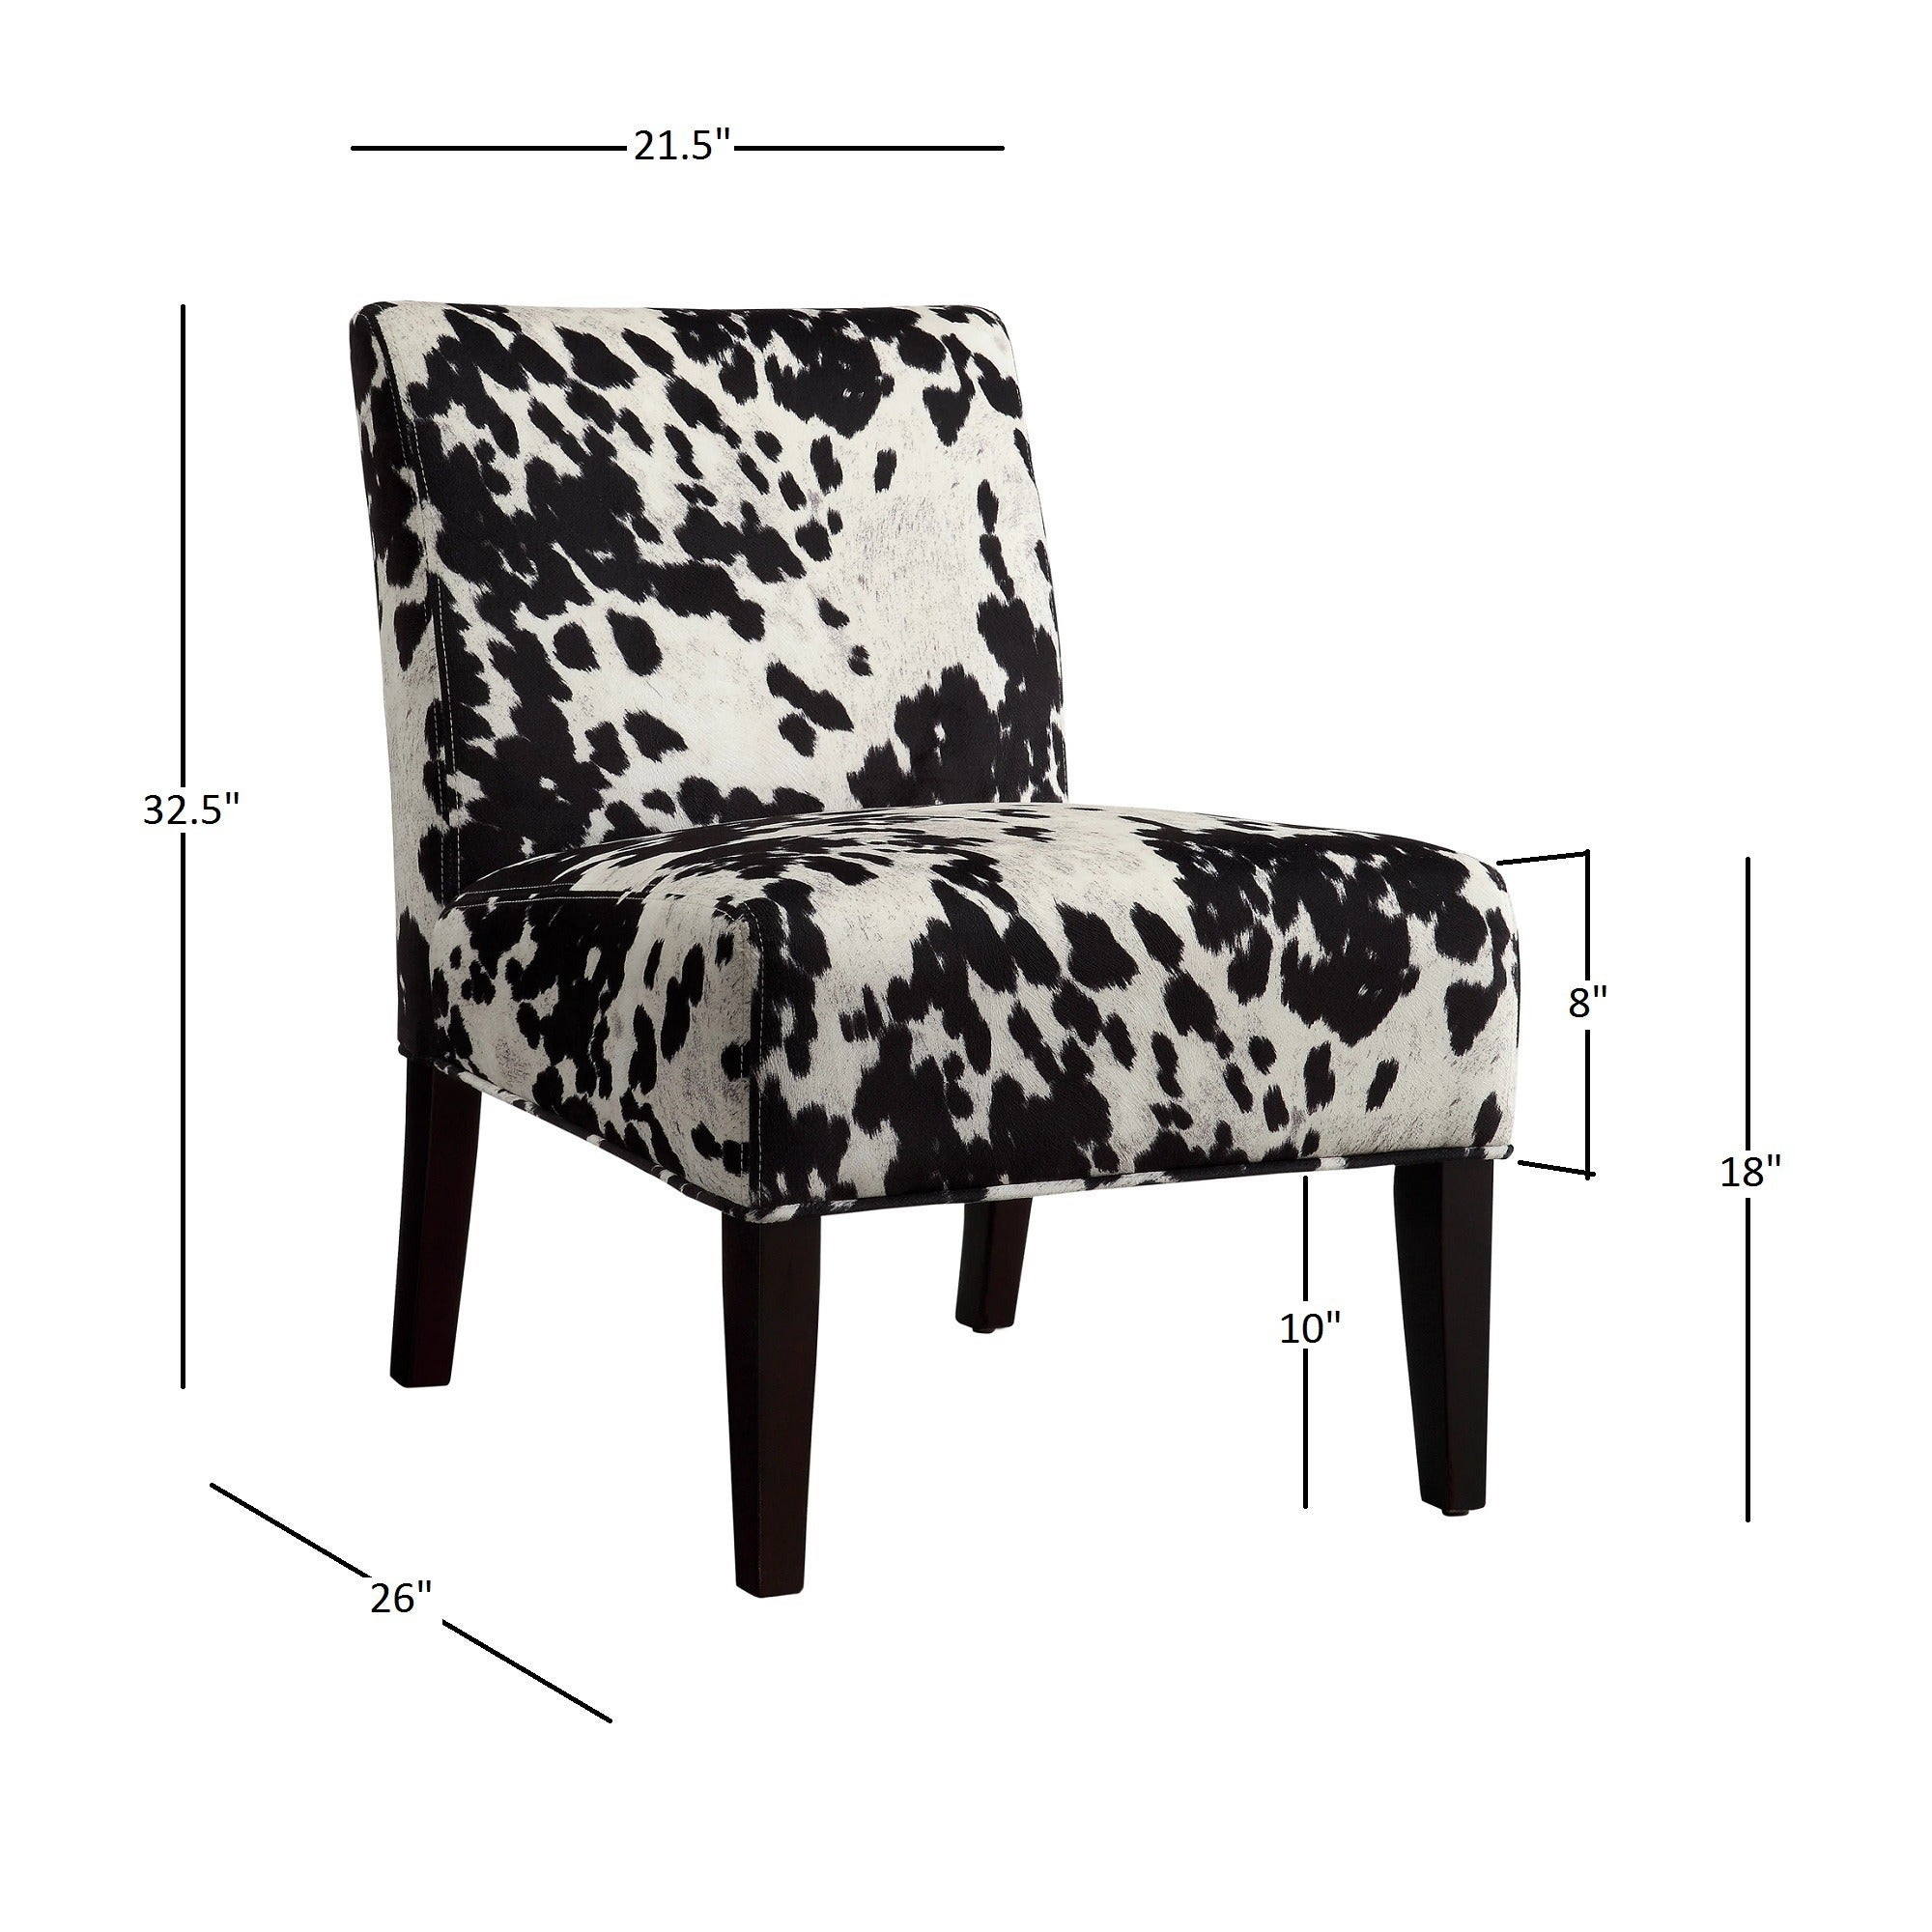 Exceptional Black And White Faux Cow Hide Fabric Accent Chair By INSPIRE Q Bold   Free  Shipping Today   Overstock.com   15416949